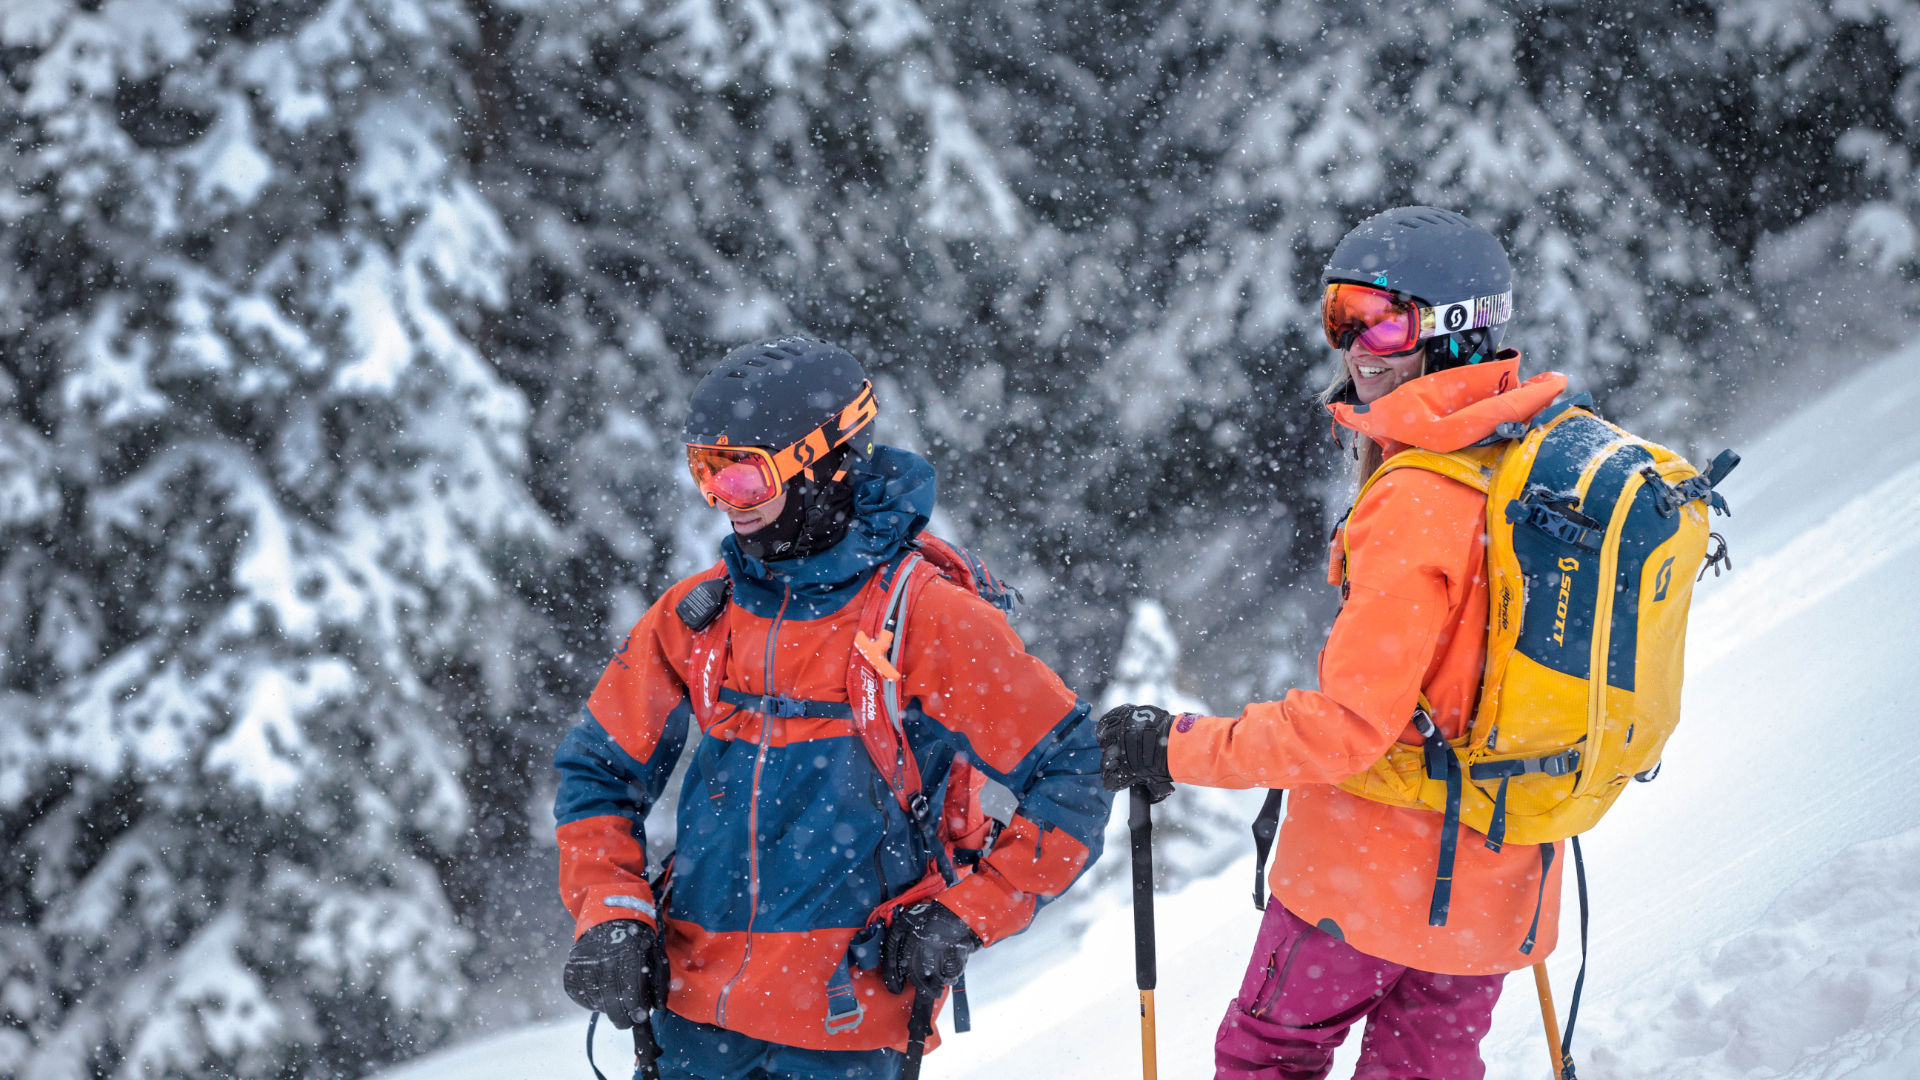 Two freeride skiers standing in the snow, equipped with an avalanche backpacks looking for their run